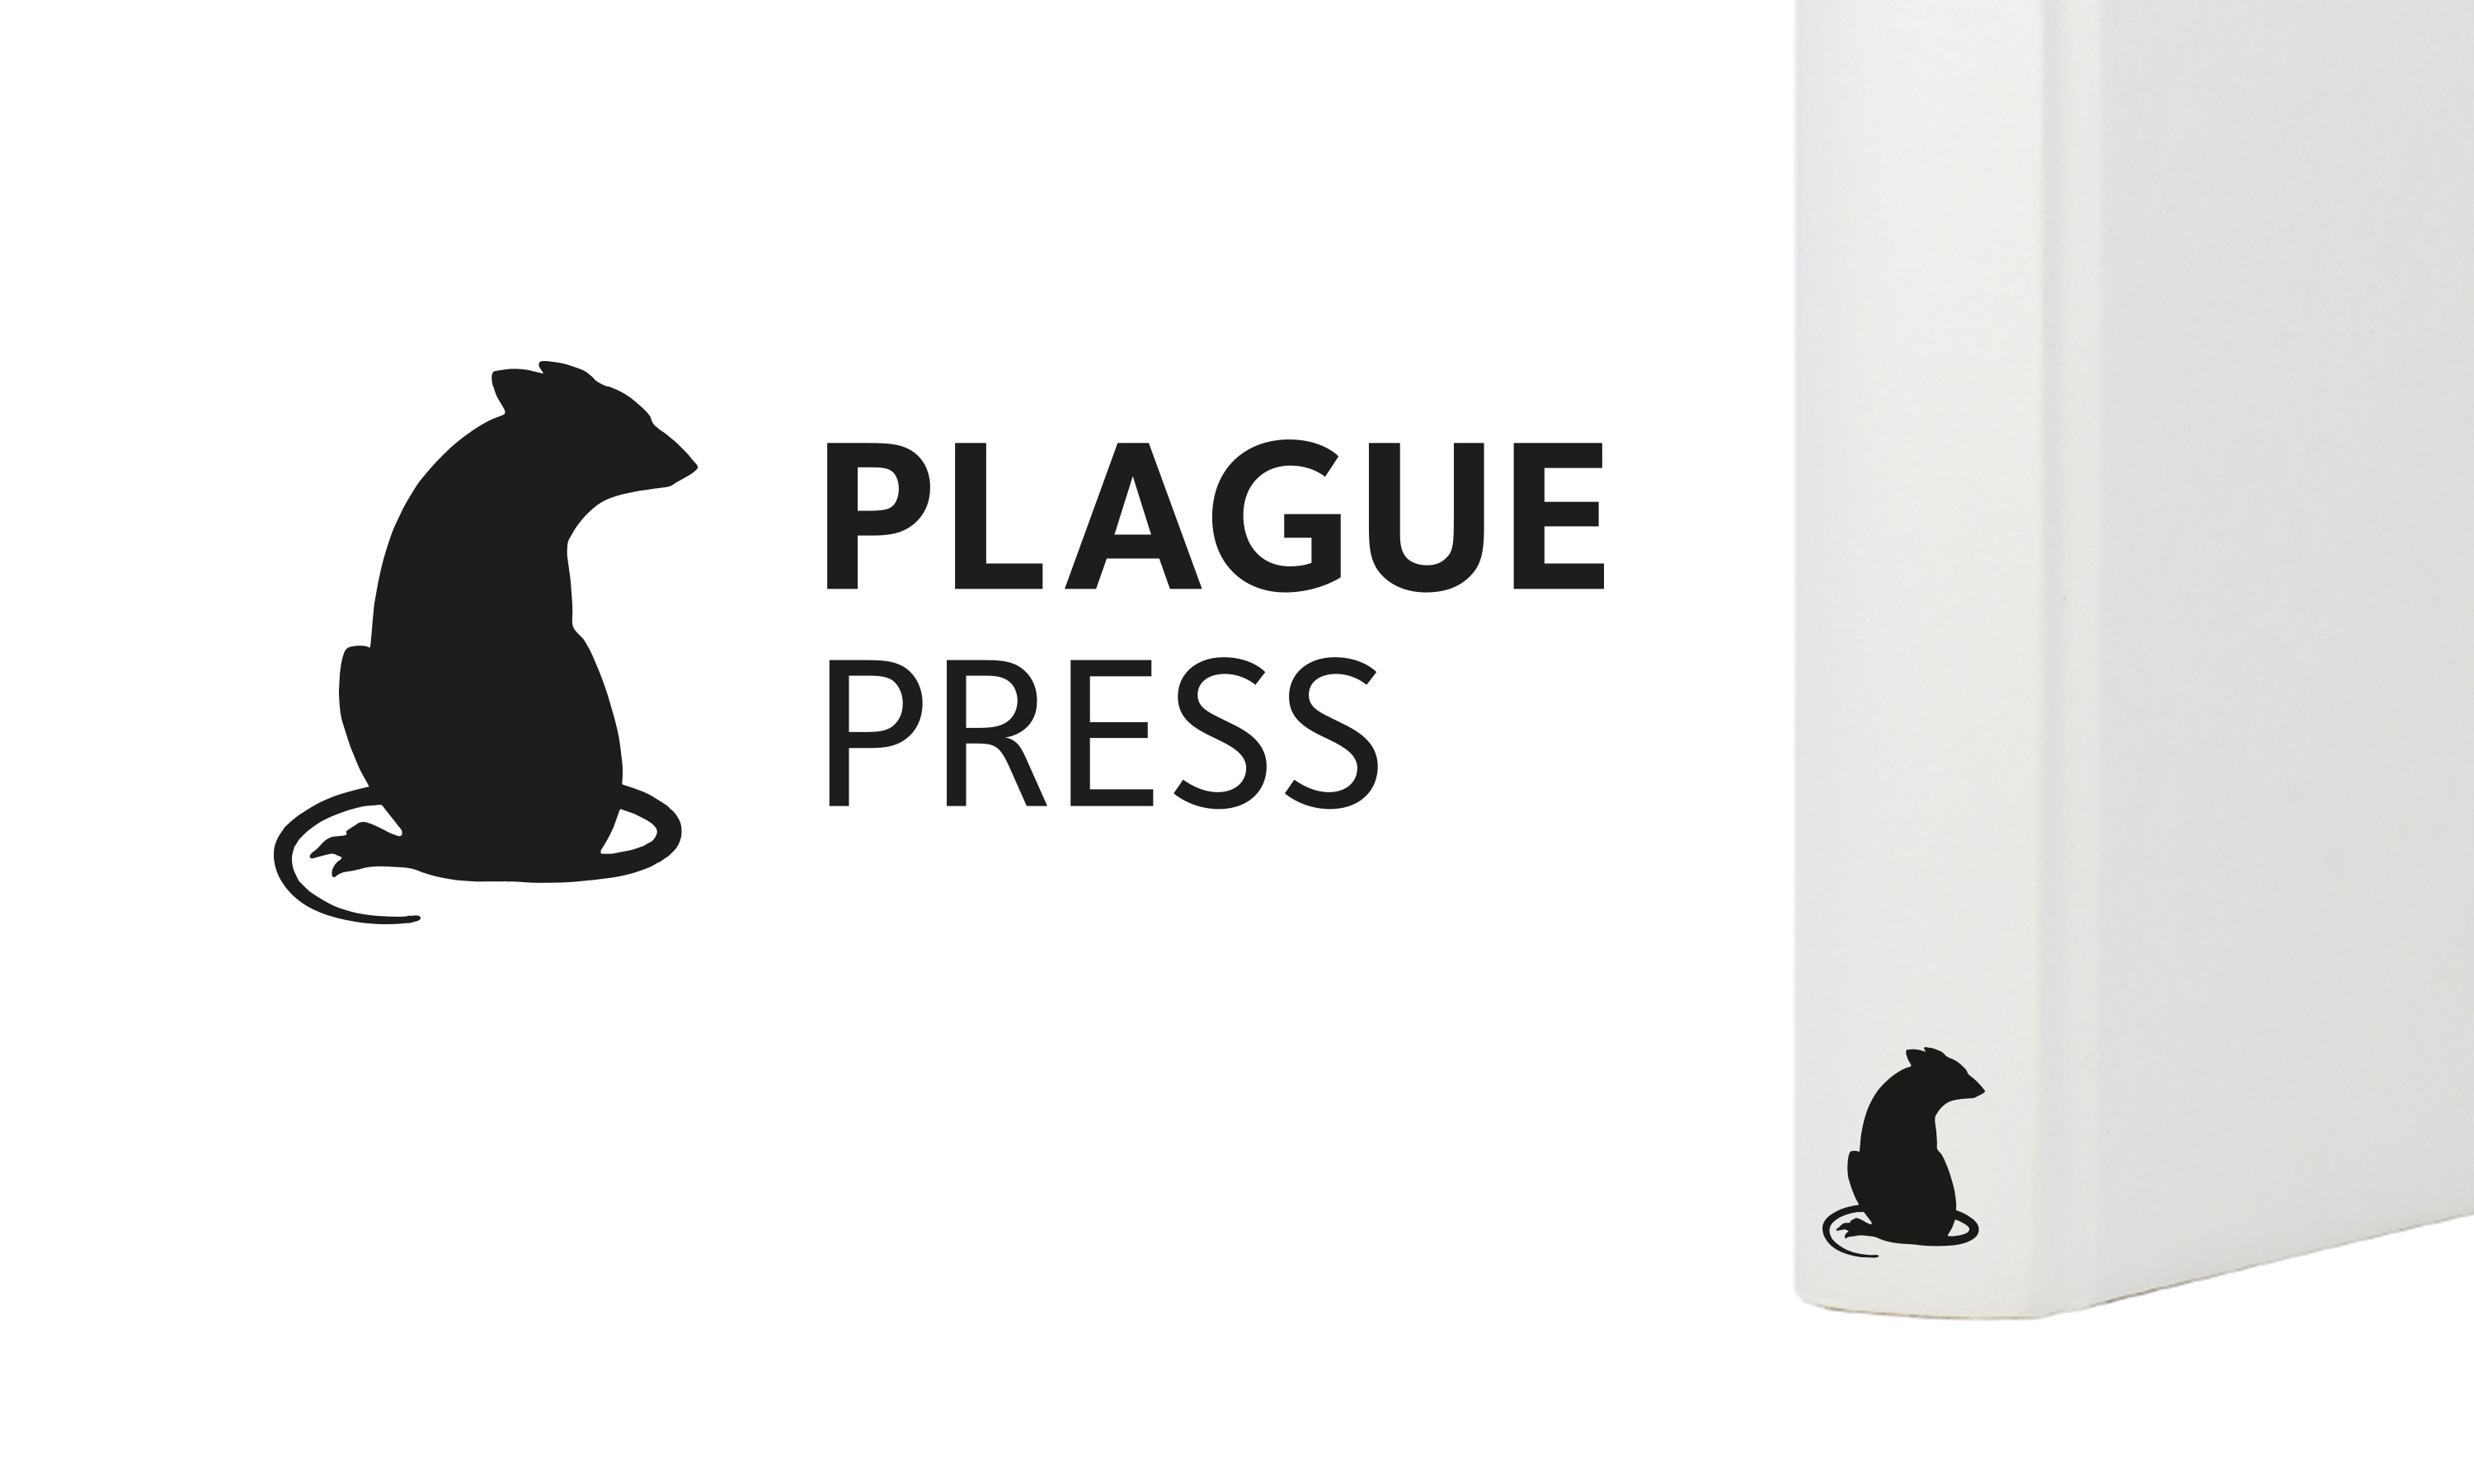 Plague Press logo by Neon, colophon on book spine, designed by Dana Robertson